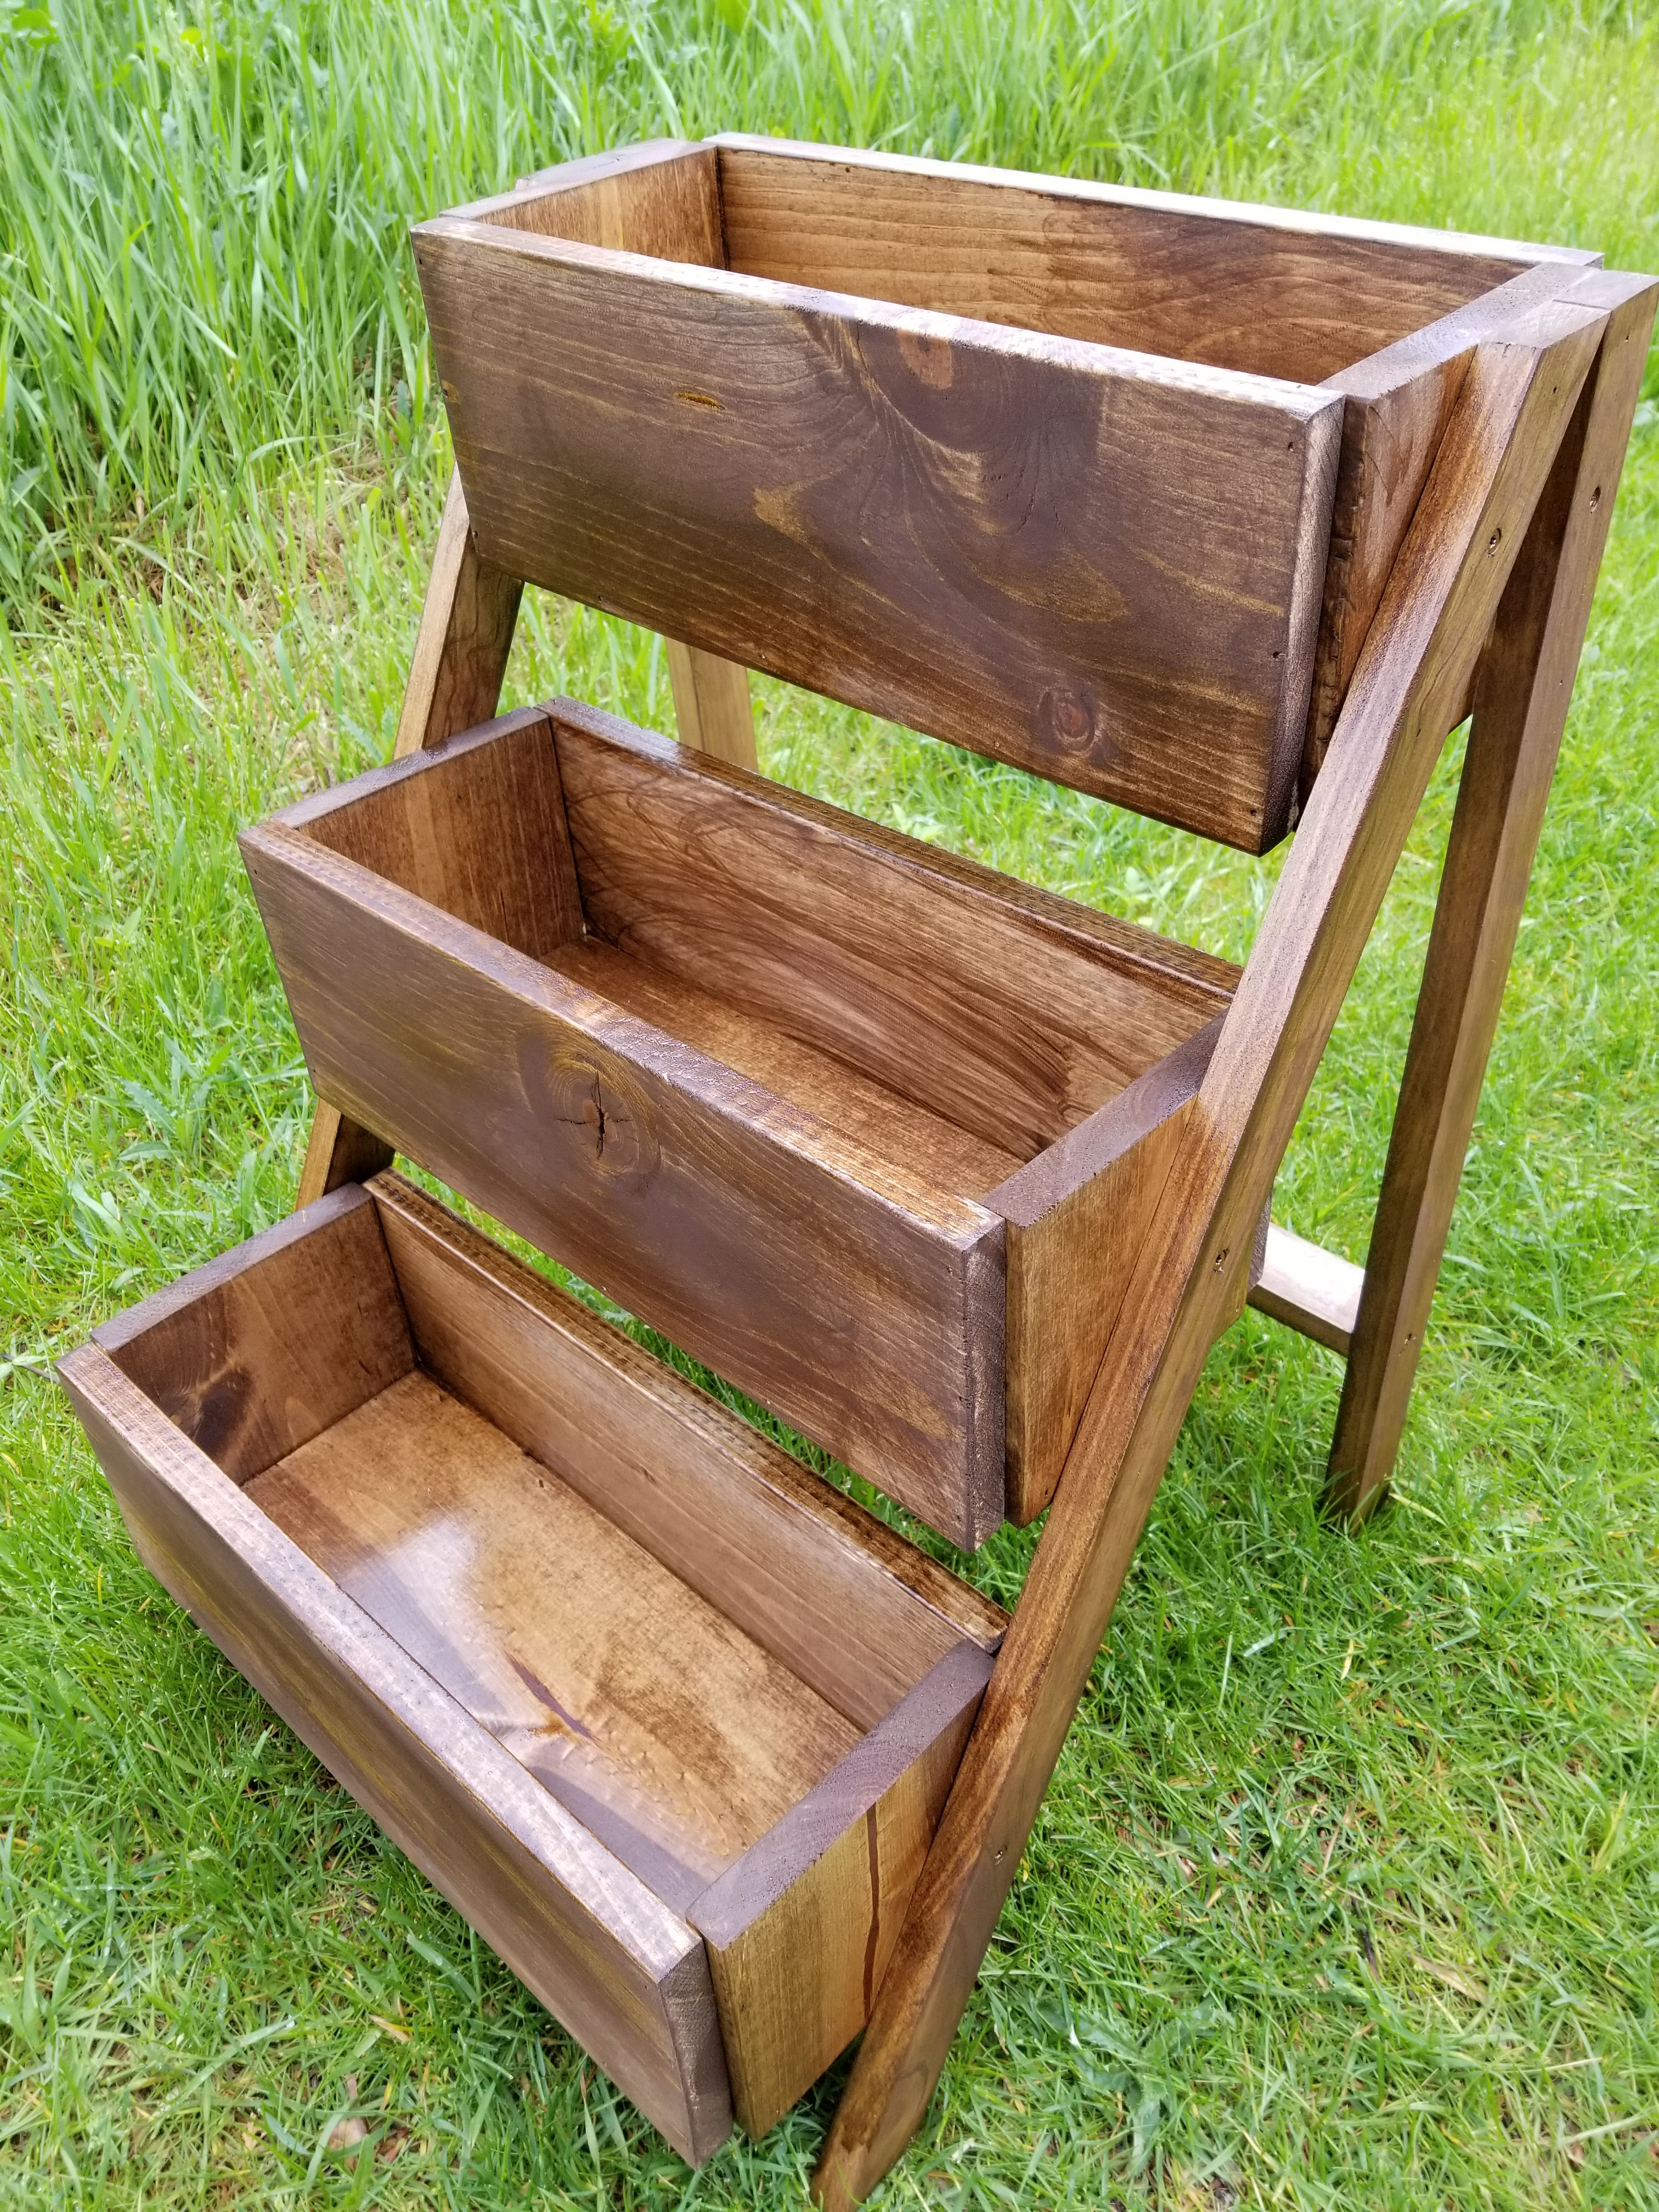 Ana White 3 Tier Planter Diy Projects With Images 640 x 480